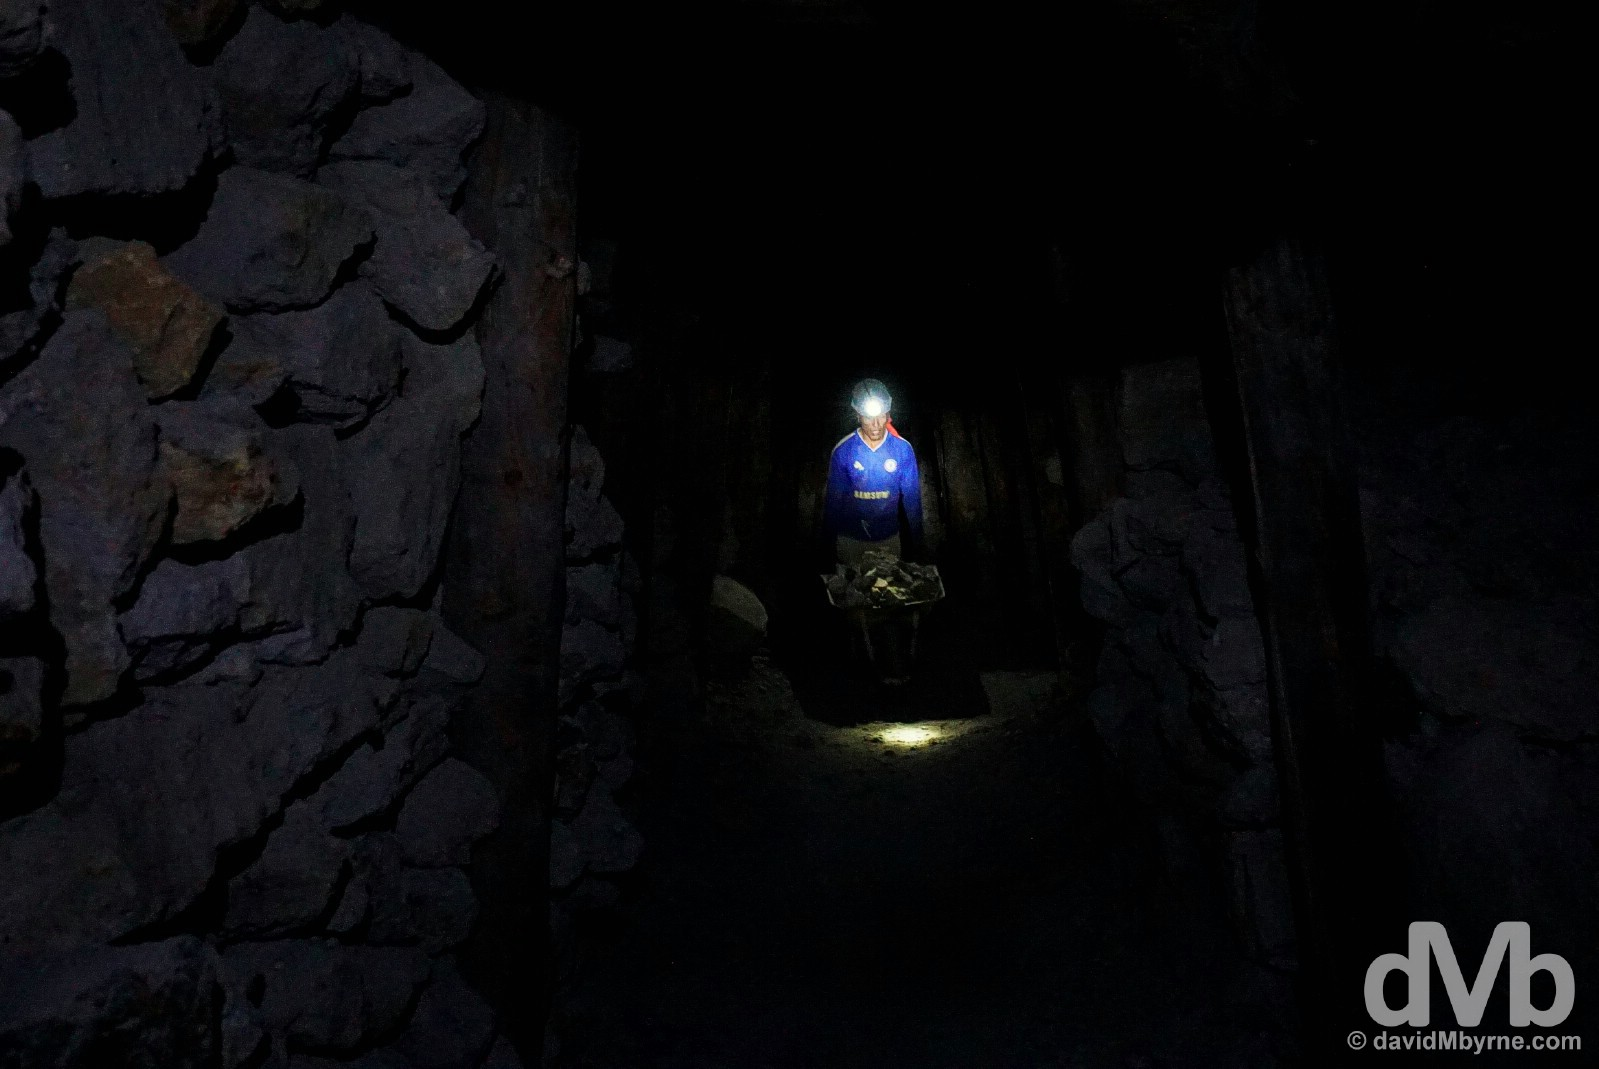 In the deep, dark mineral mines of Cerro Rico, Potosi, Bolivia. September 1, 2015.